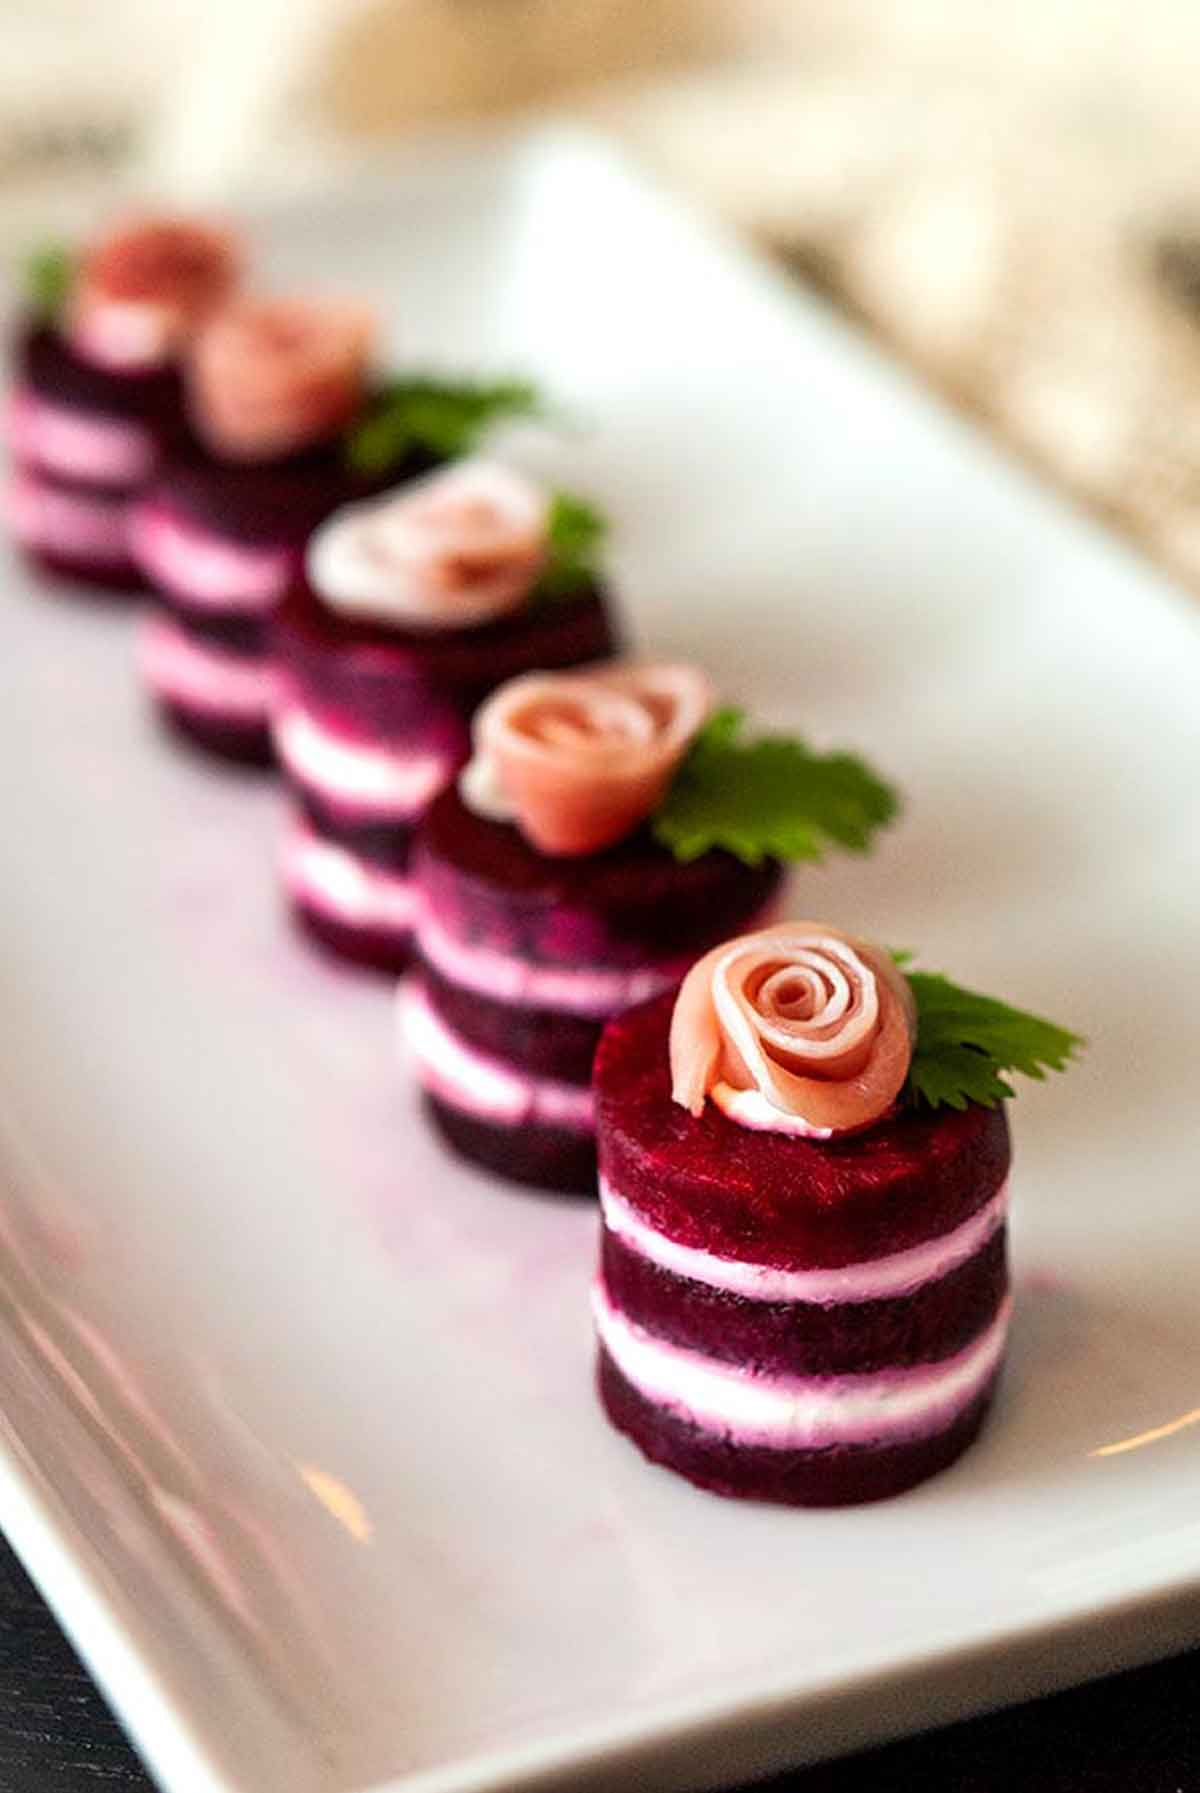 6 beet napoleons, with prosciutto roses on top, garnished with cilantro leaves on a plate.